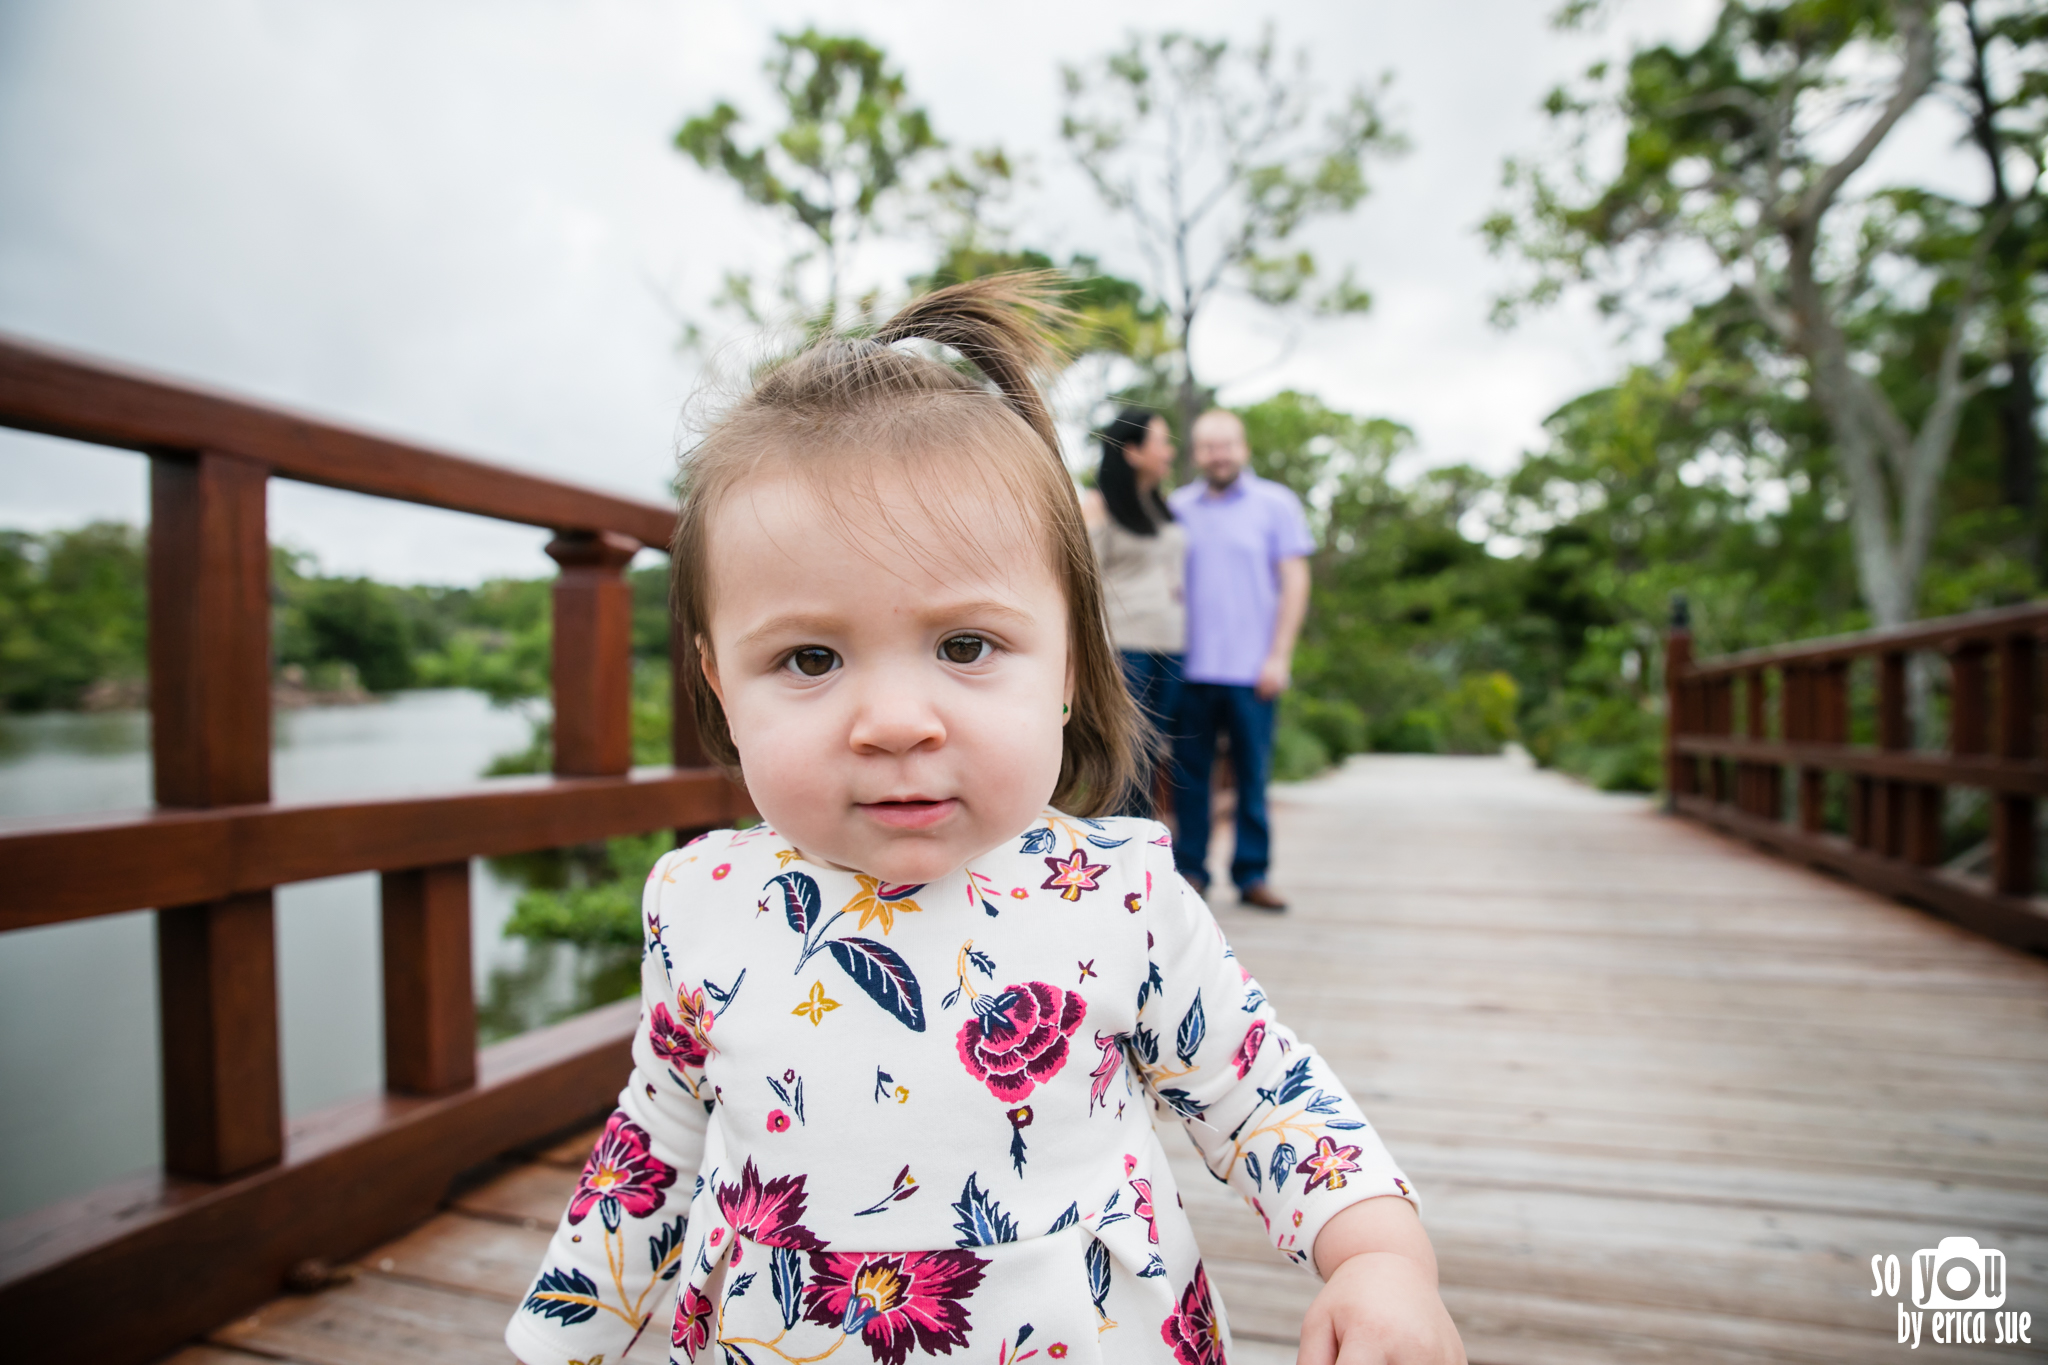 morikami-fl-lifestyle-family-photography-so-you-by-erica-sue-davie-7273.jpg